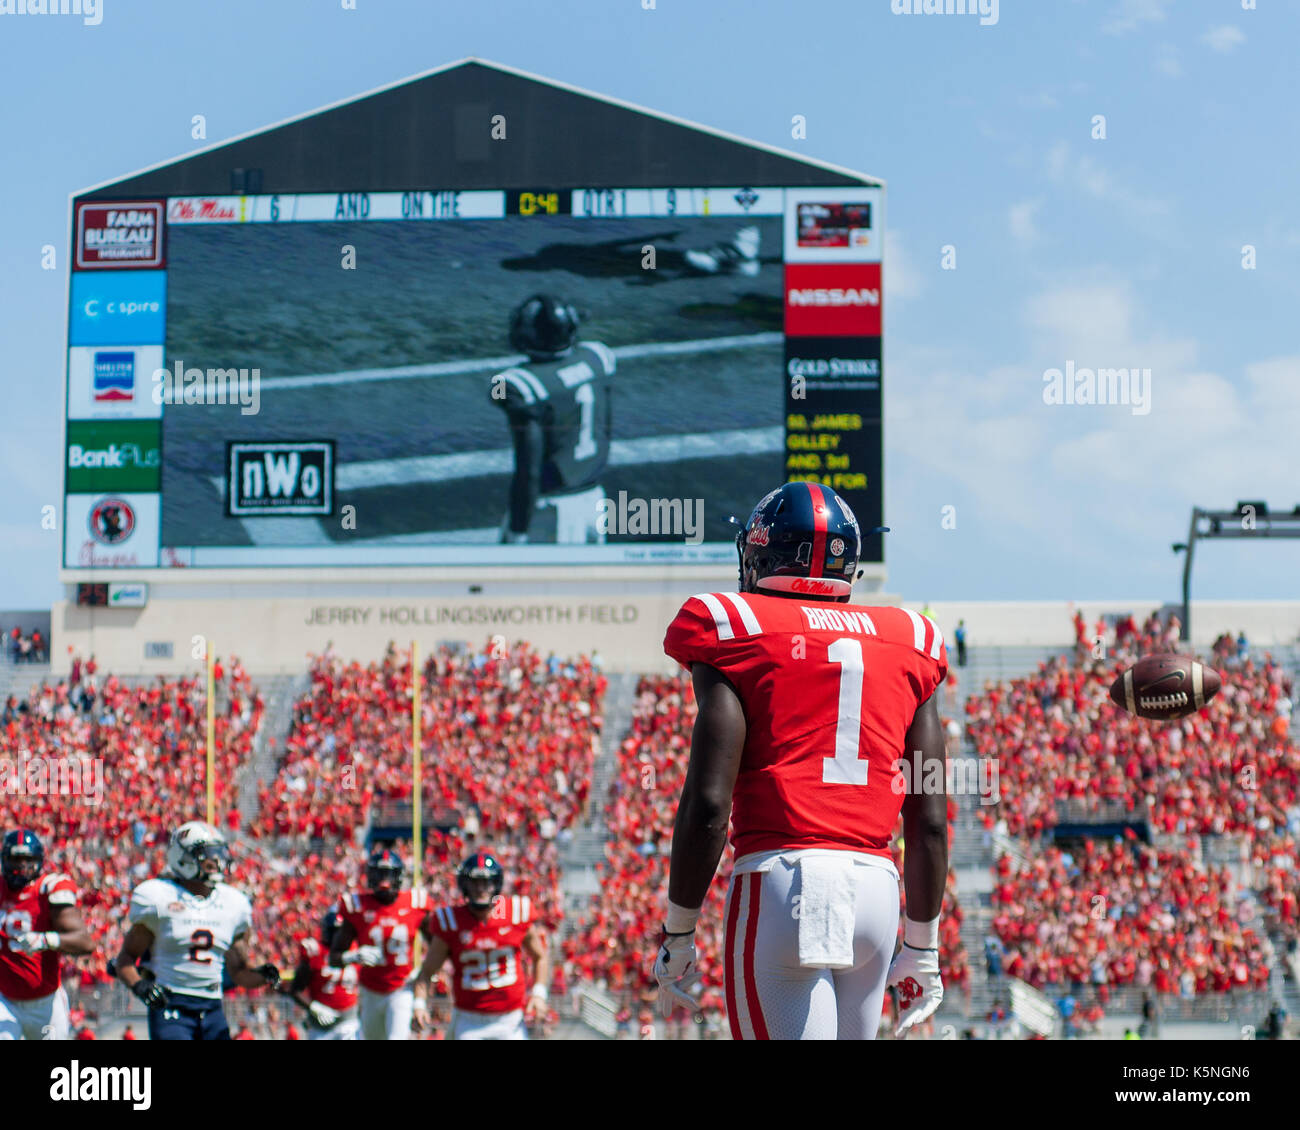 Oxford, USA.  9th Sept 2017. University of Mississippi Wide Receiver A.J. Brown (1) waits for his teammates in the endzone after scoring a touchdown during the first quarter at Vaught-Hemingway Stadium in Oxford, Mississippi,  on Saturday, September 9, 2107.  Credit: Kevin Williams/Alamy Live News. - Stock Image